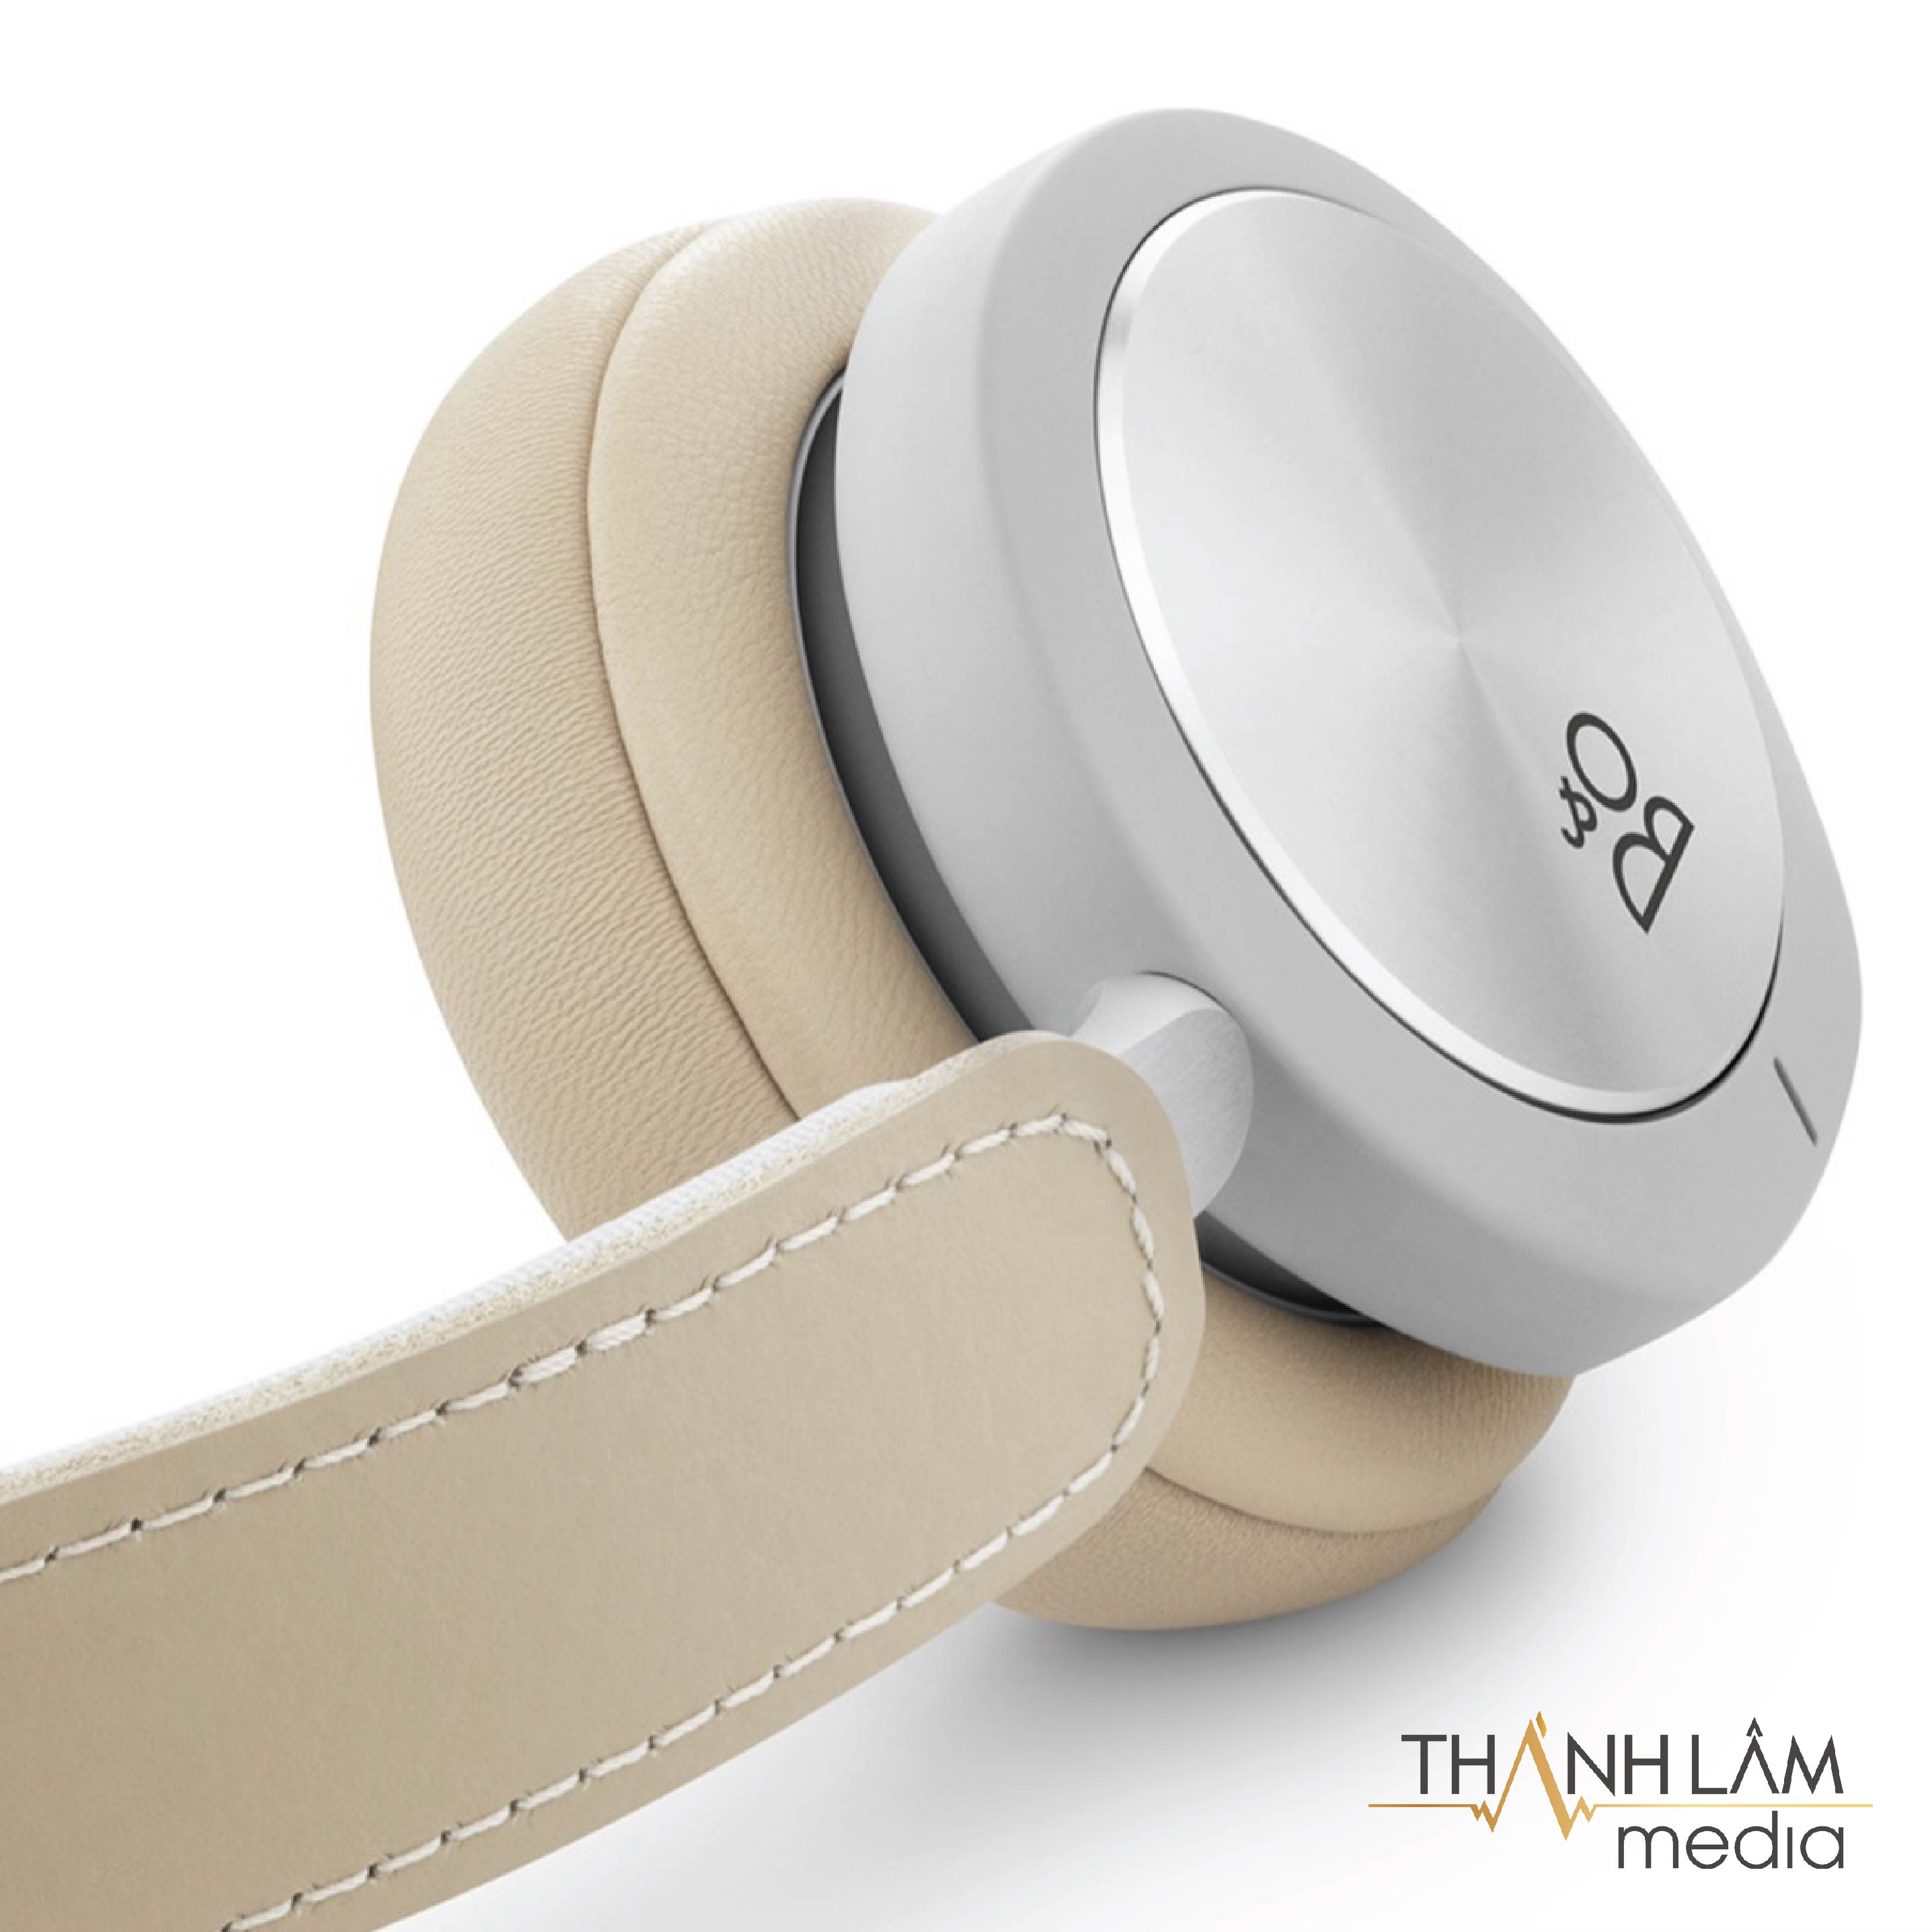 beoplay-h8i-bang-olufsen-08